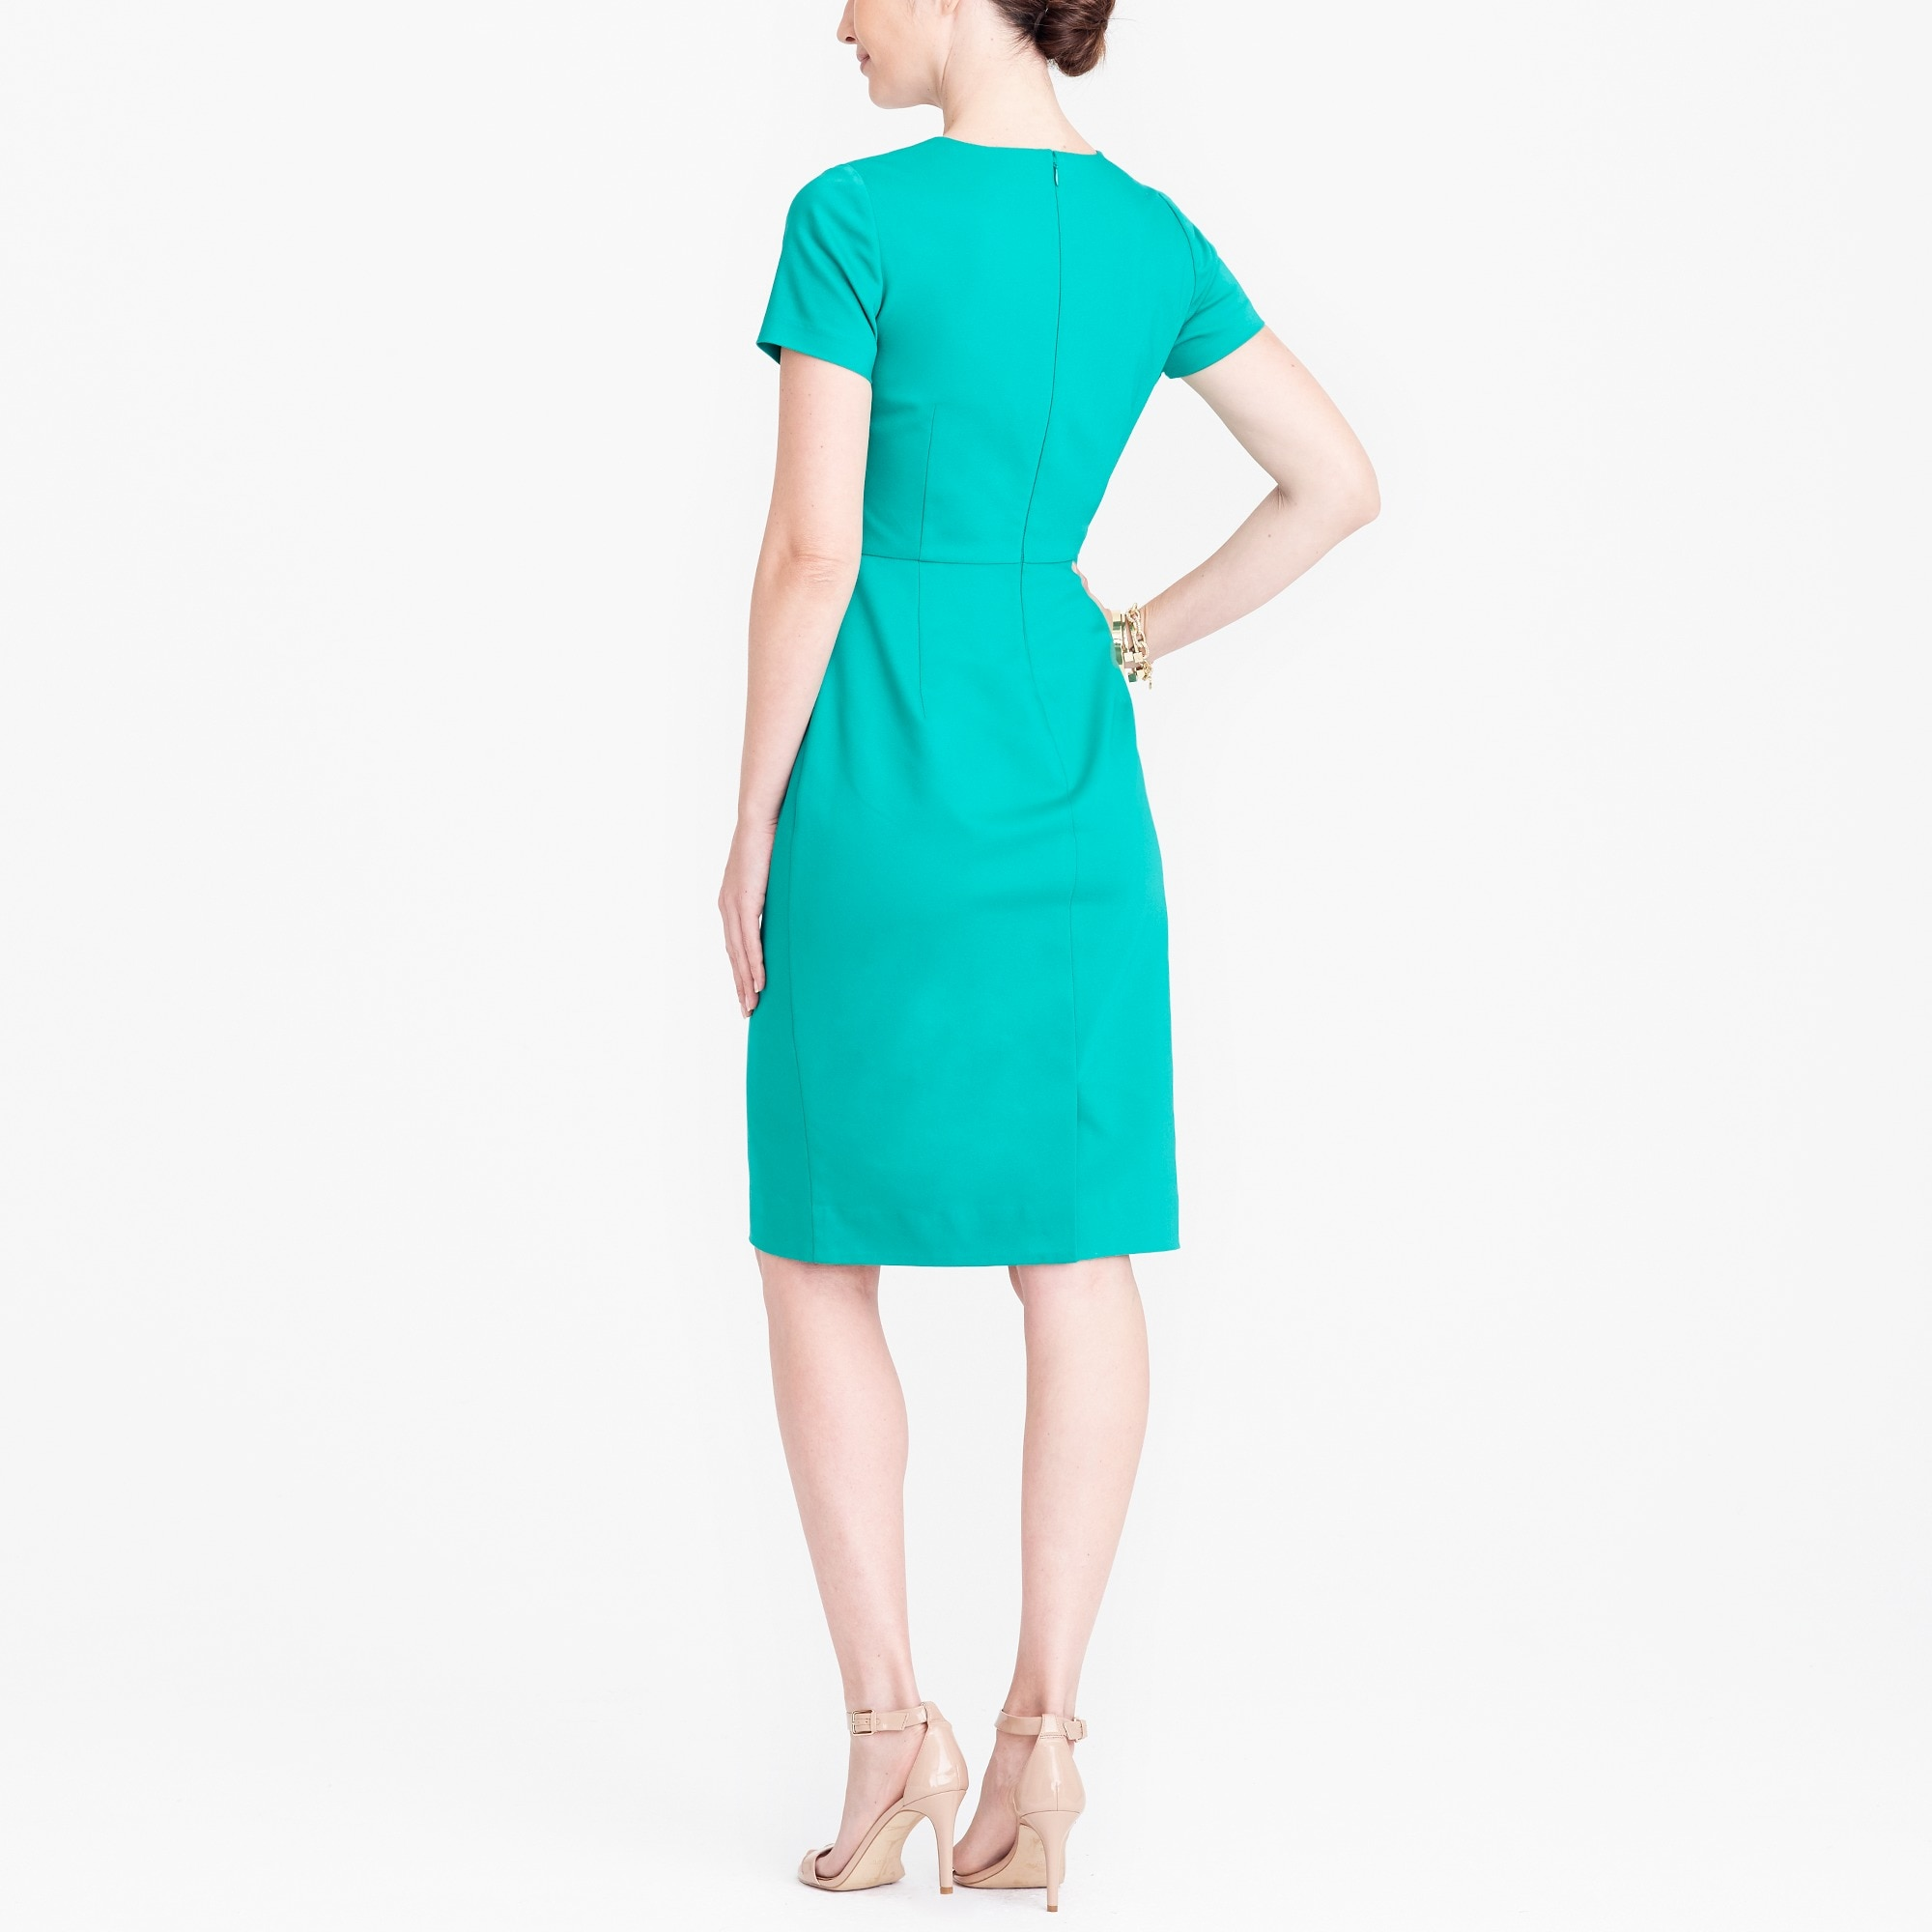 Cap-sleeve v-neck dress